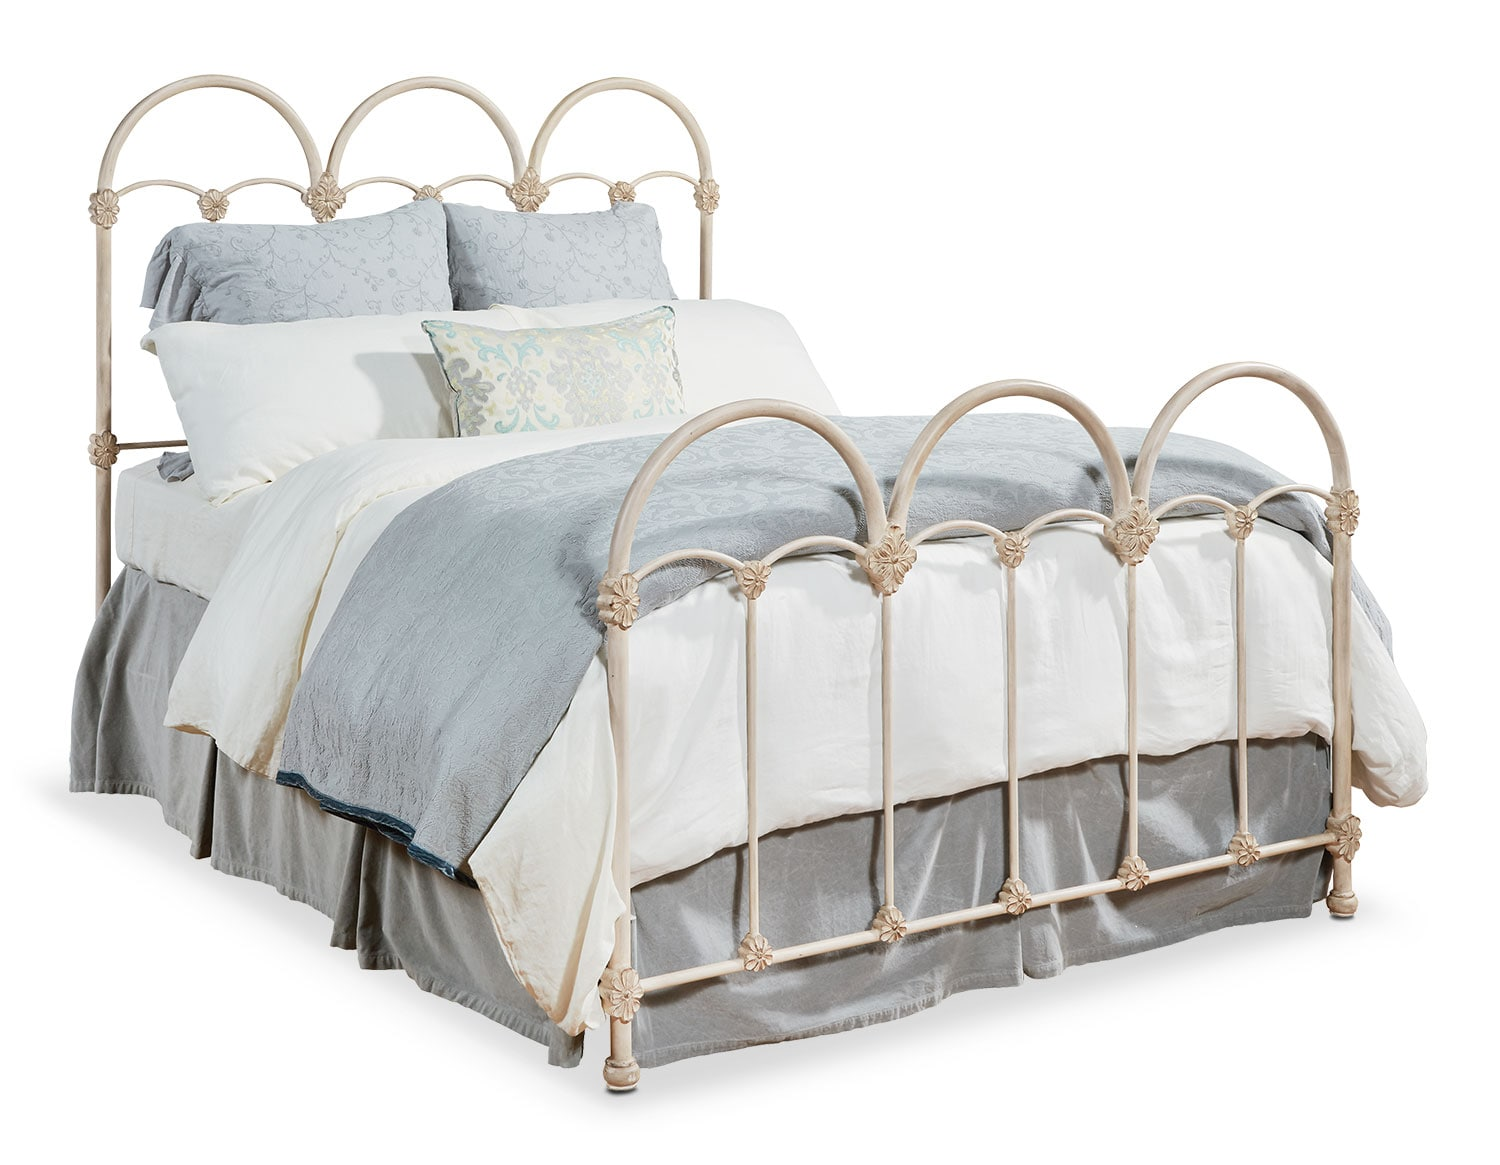 The Rosette Iron Bed Collection